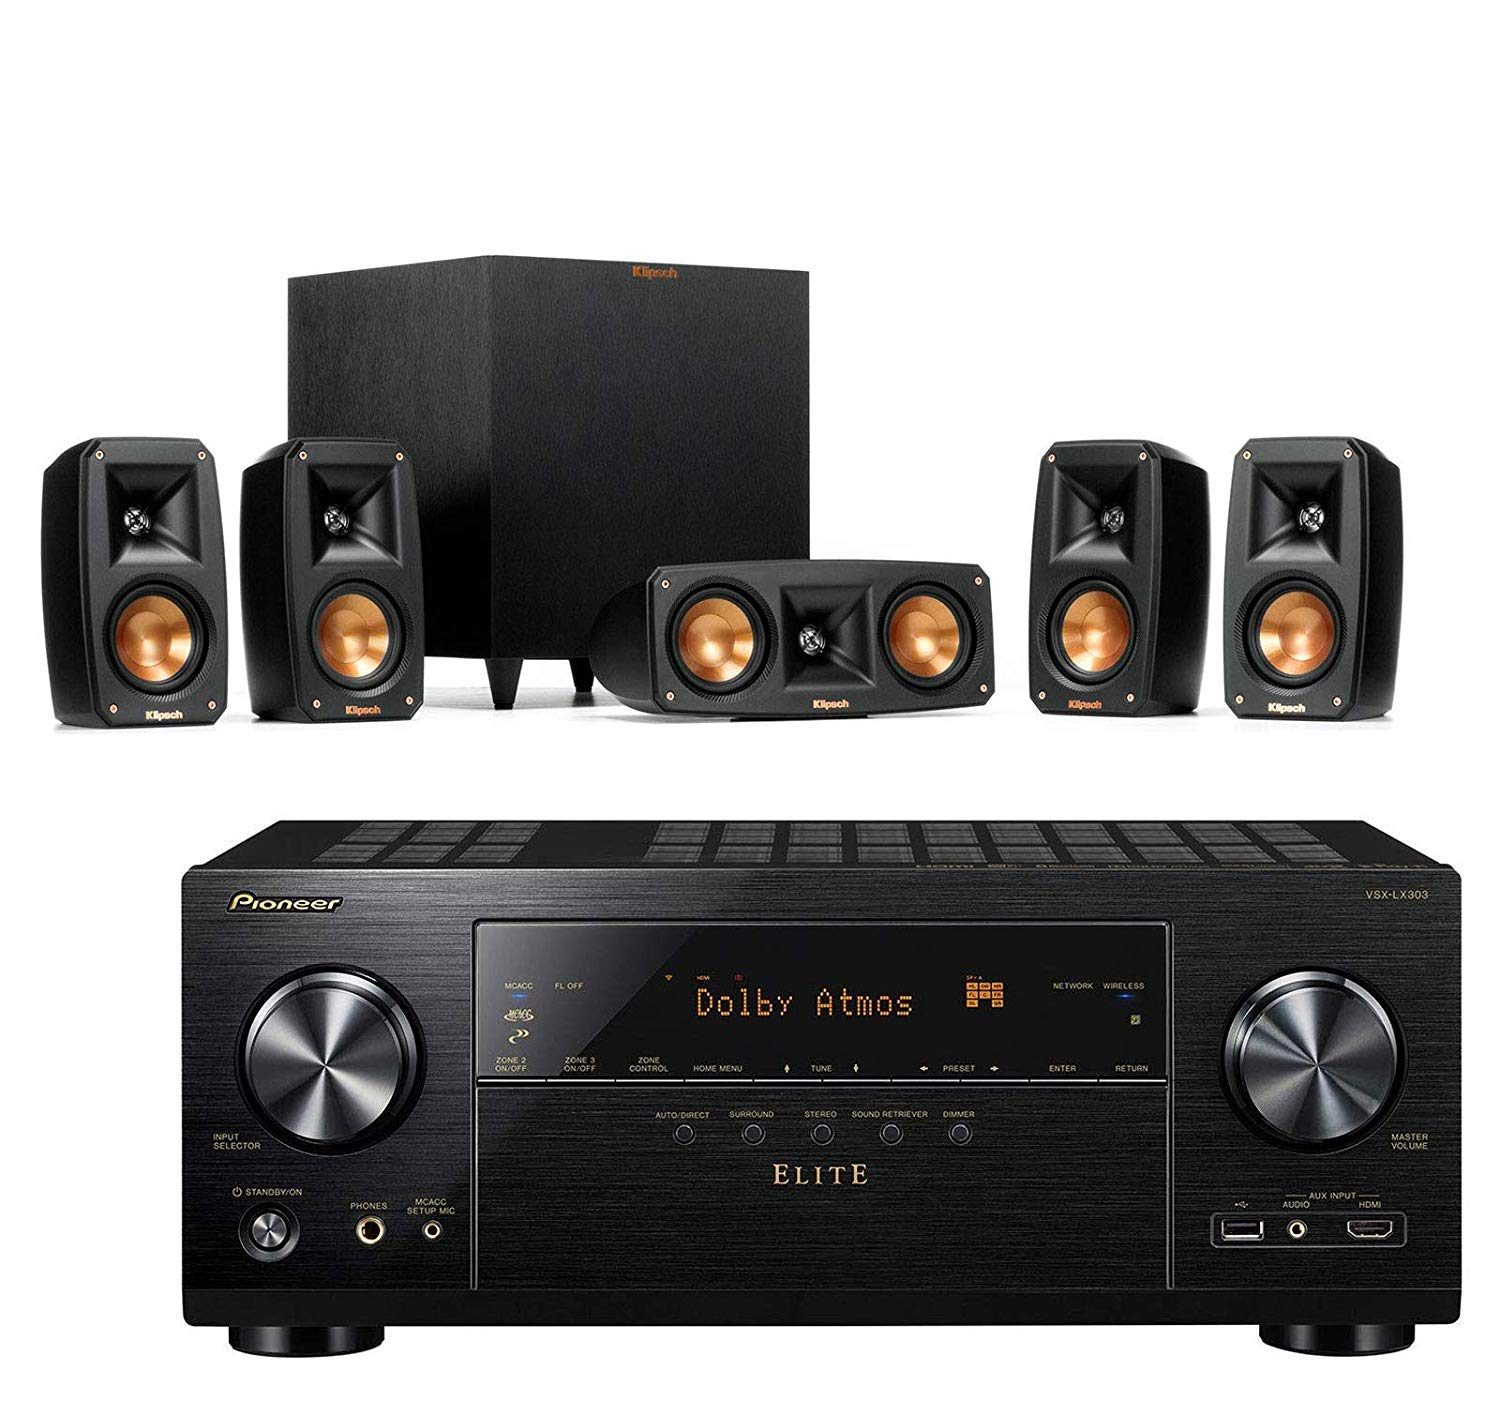 Klipsch Reference Theater Pack 5.1 Surround Sound System Bundle with Pioneer VSX-LX303 9.2-Channel 4k Ultra HD Network A/V Receiver - Black